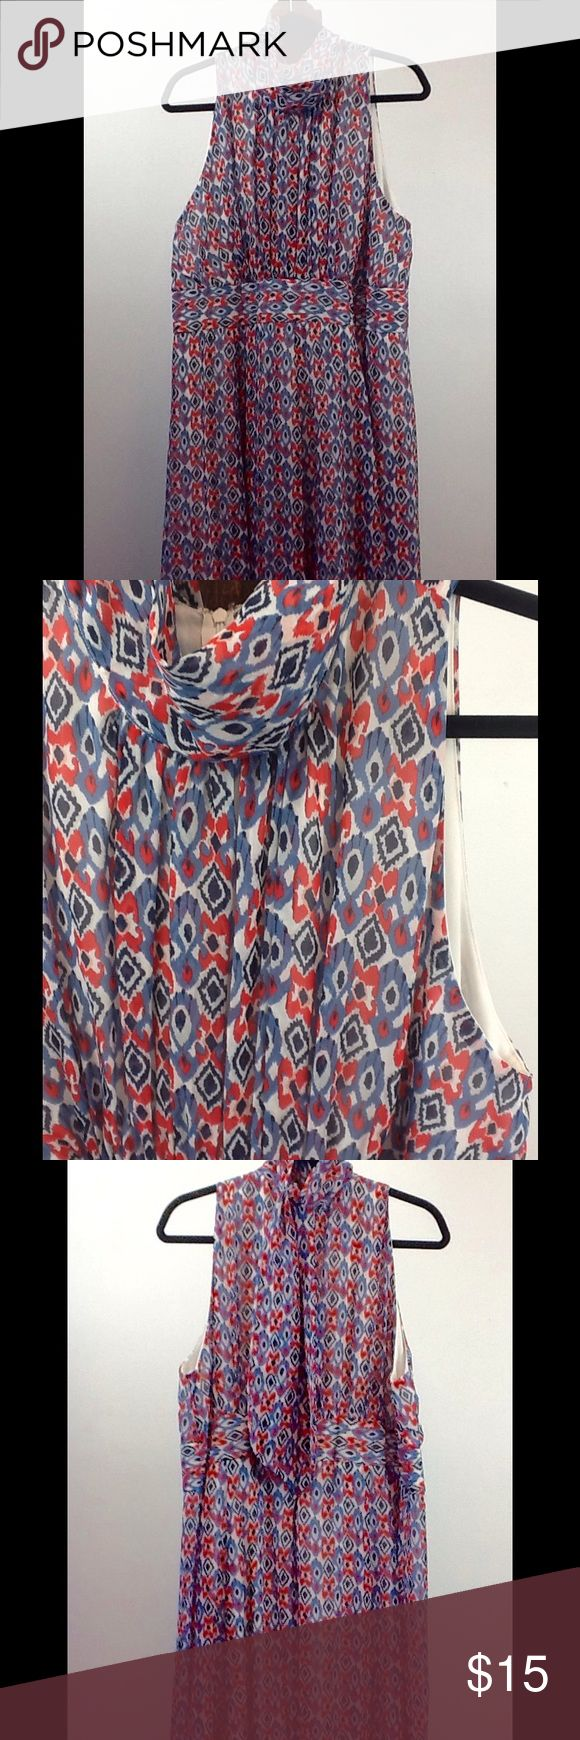 VOIR VOIR Plus Size 18 Fit & Flare Halter Dress Red, white, and blue dress. Perfect for Memorial Day weekend or July 4th! Fit and flare style.  Halter with sheer neck and long ties behind neck. Pleated bodice. Zip back. Two layers of material.  Top layer is chiffon type material with opaque white lining.  Plus Size 18. Dresses